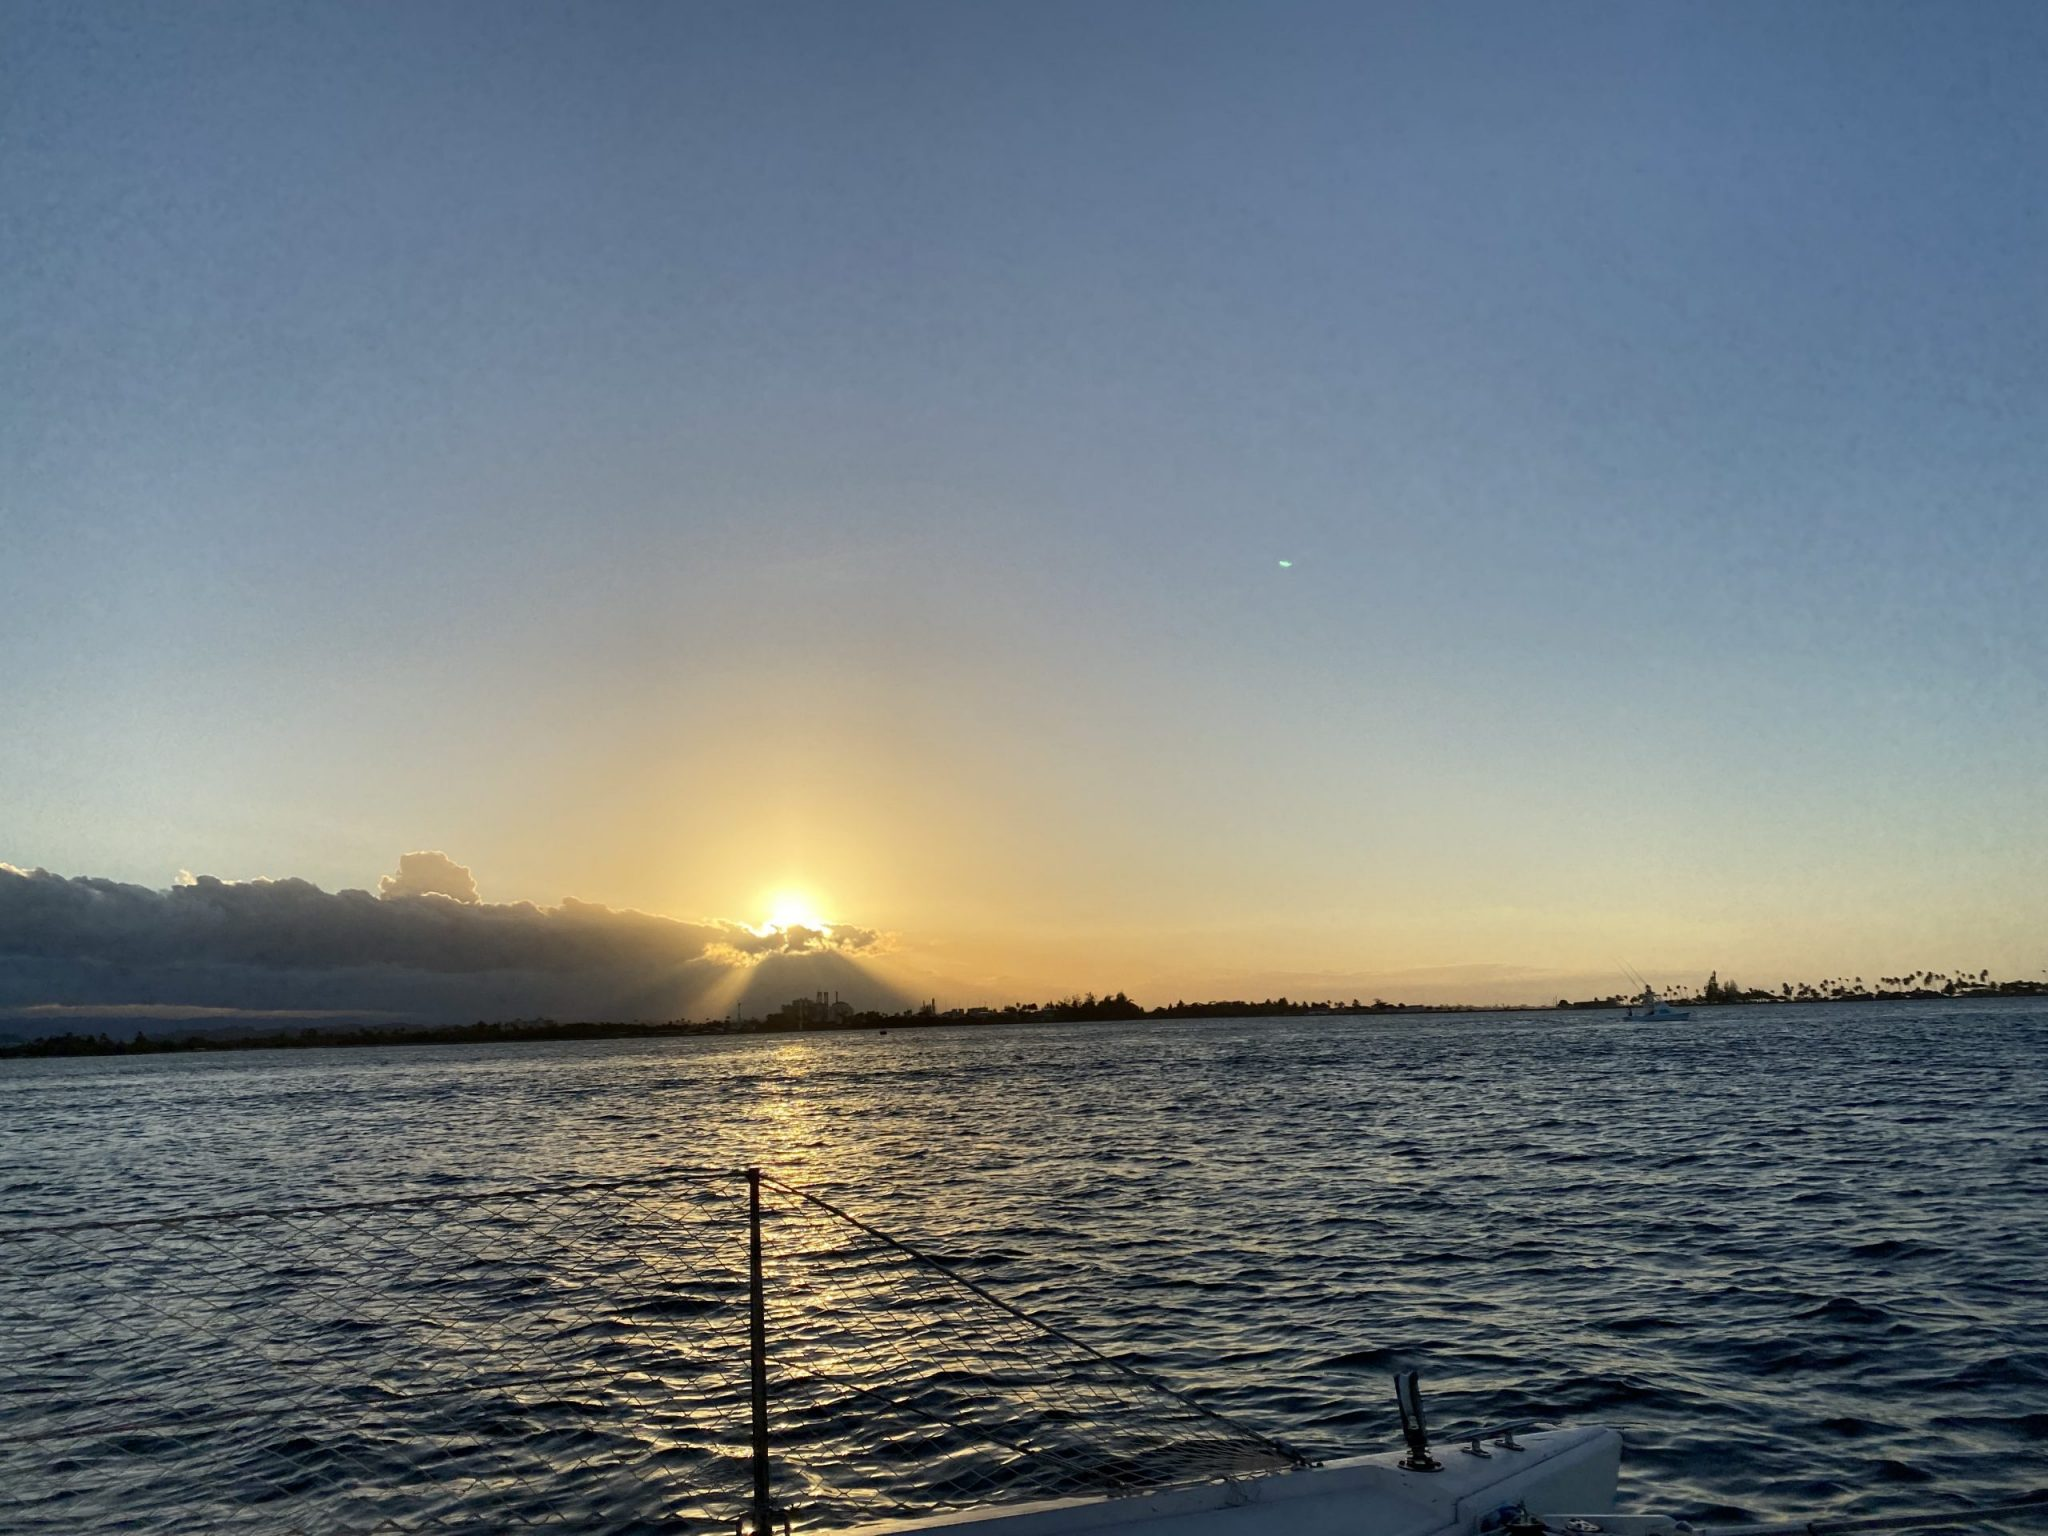 Watch the sun set over the water from old San Juan.